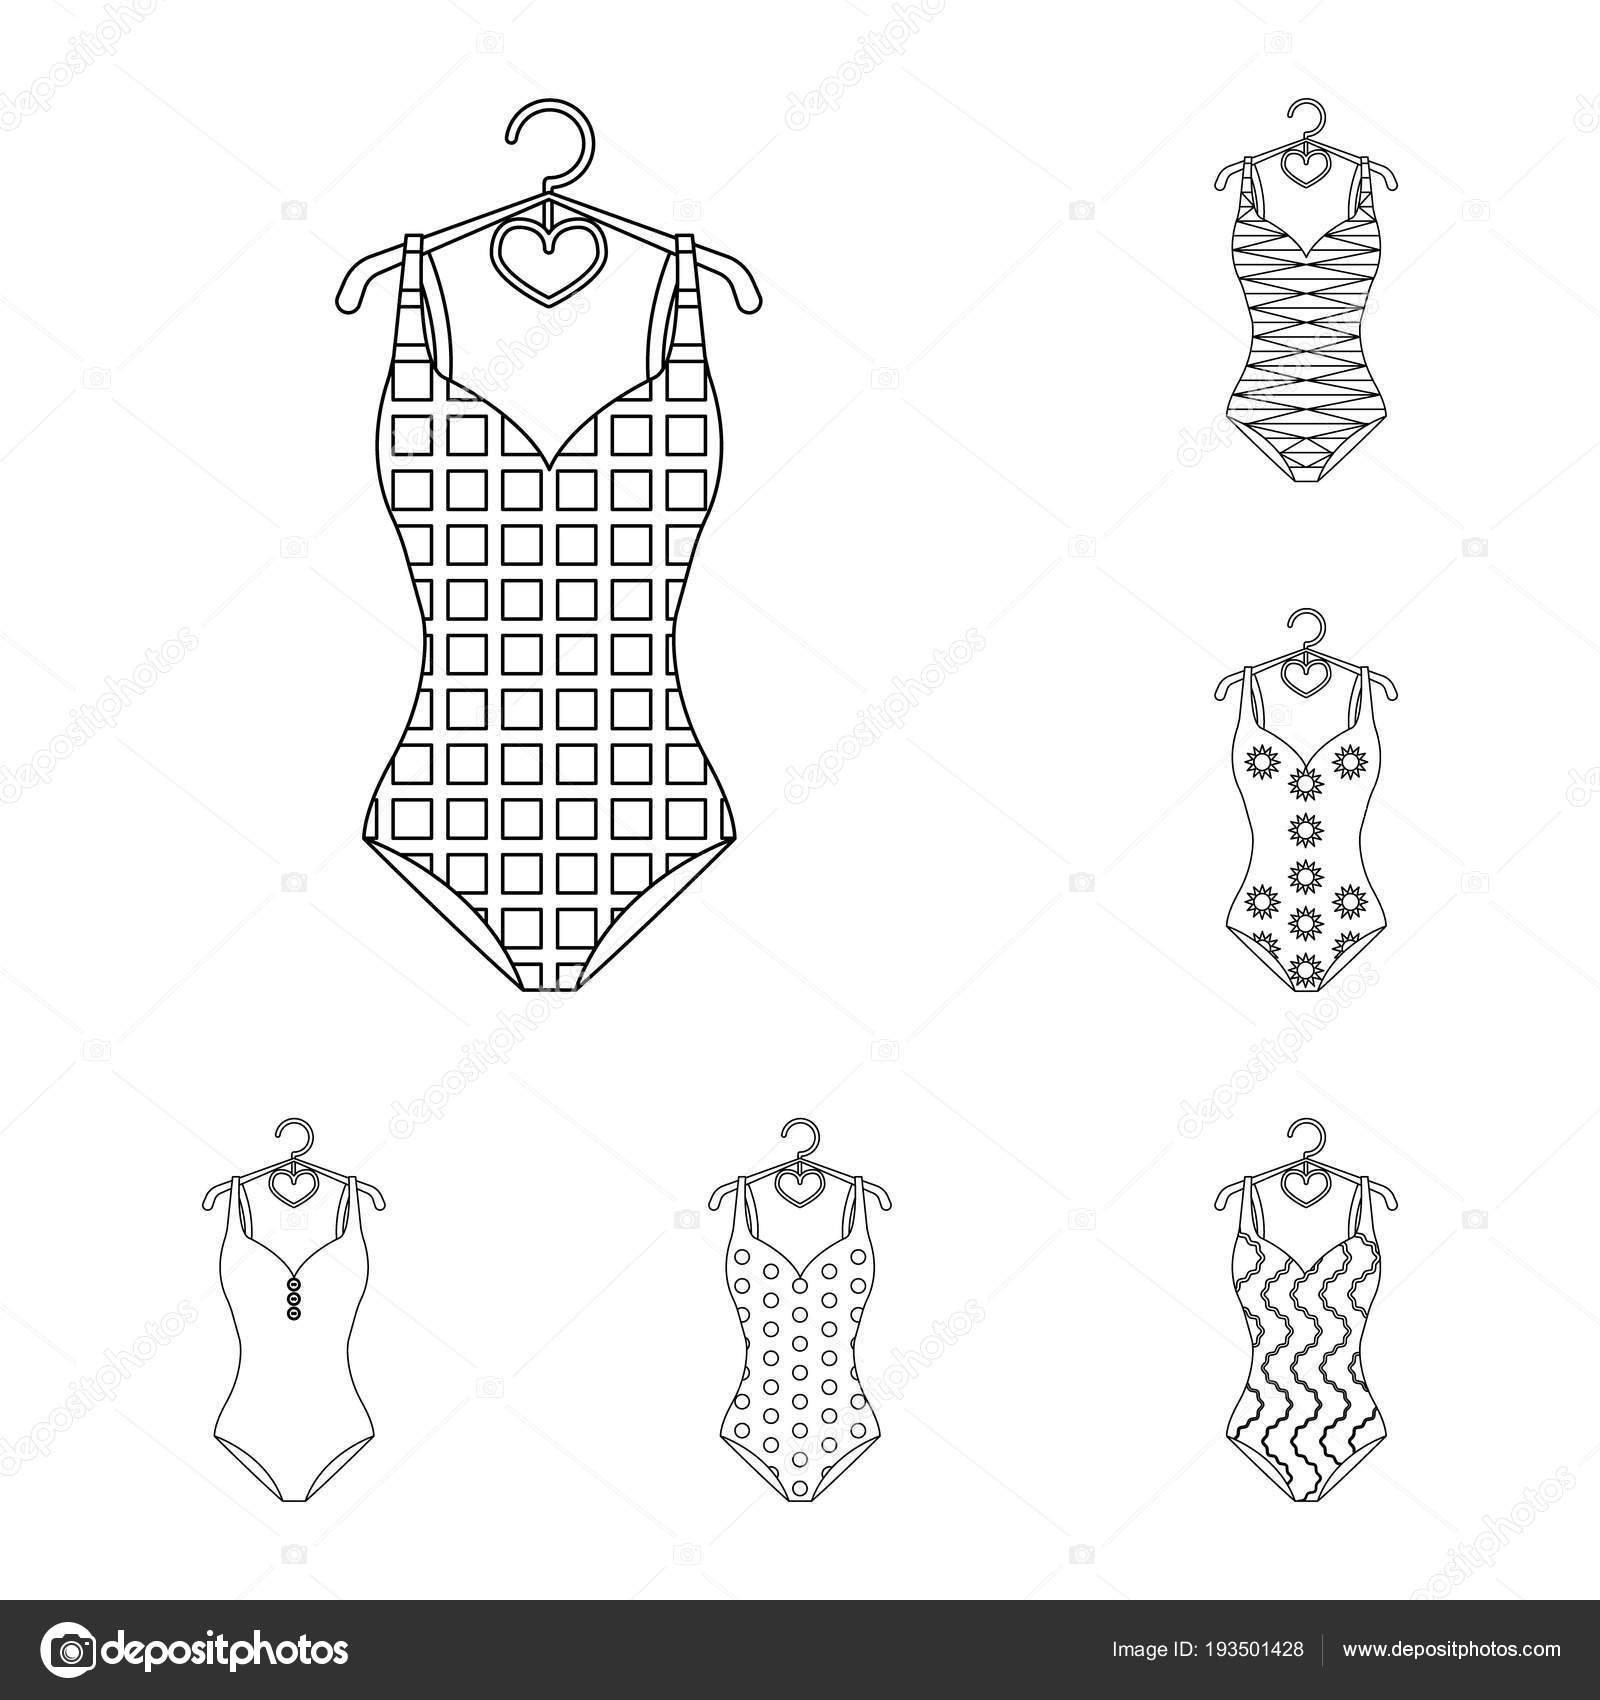 https://st3.depositphotos.com/3557671/19350/v/1600/depositphotos_193501428-stock-illustration-different-types-of-swimsuits-outline.jpg